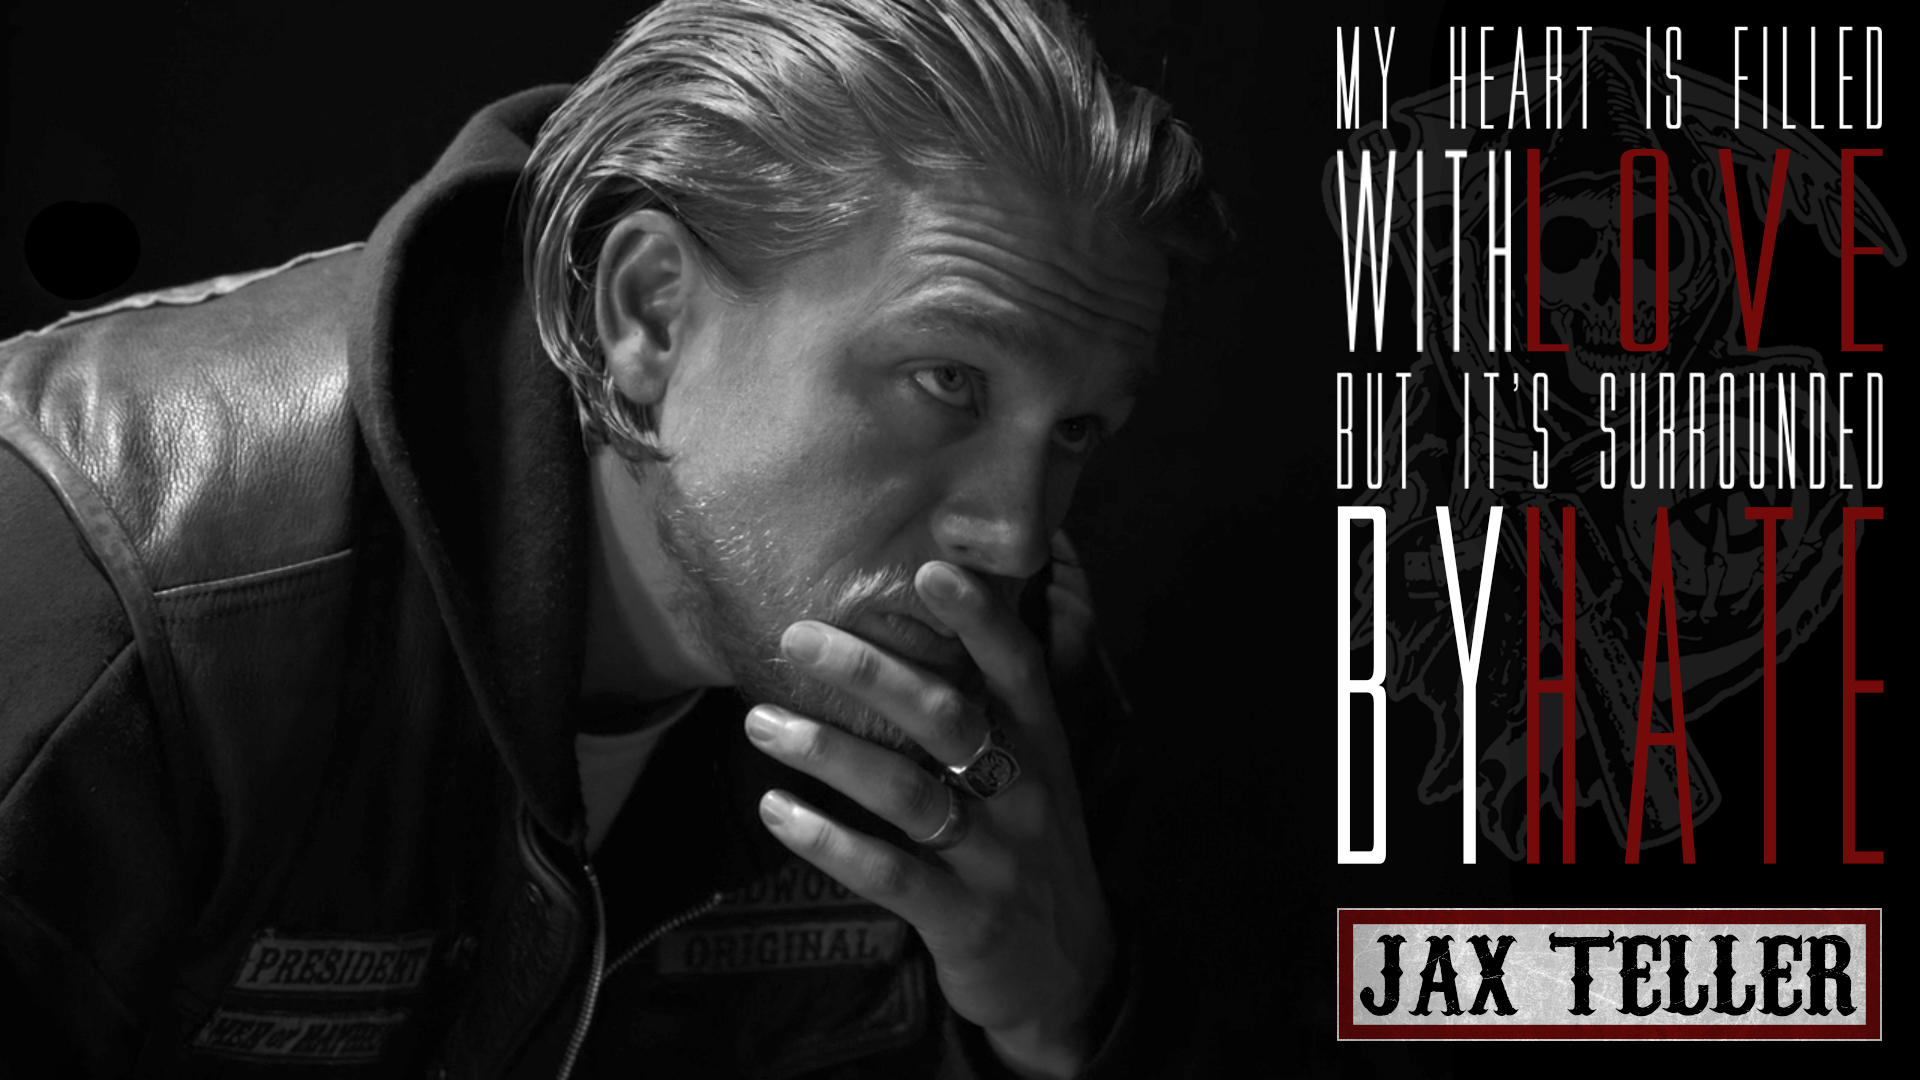 sons of anarchy jax teller fan art by coppersgraphics